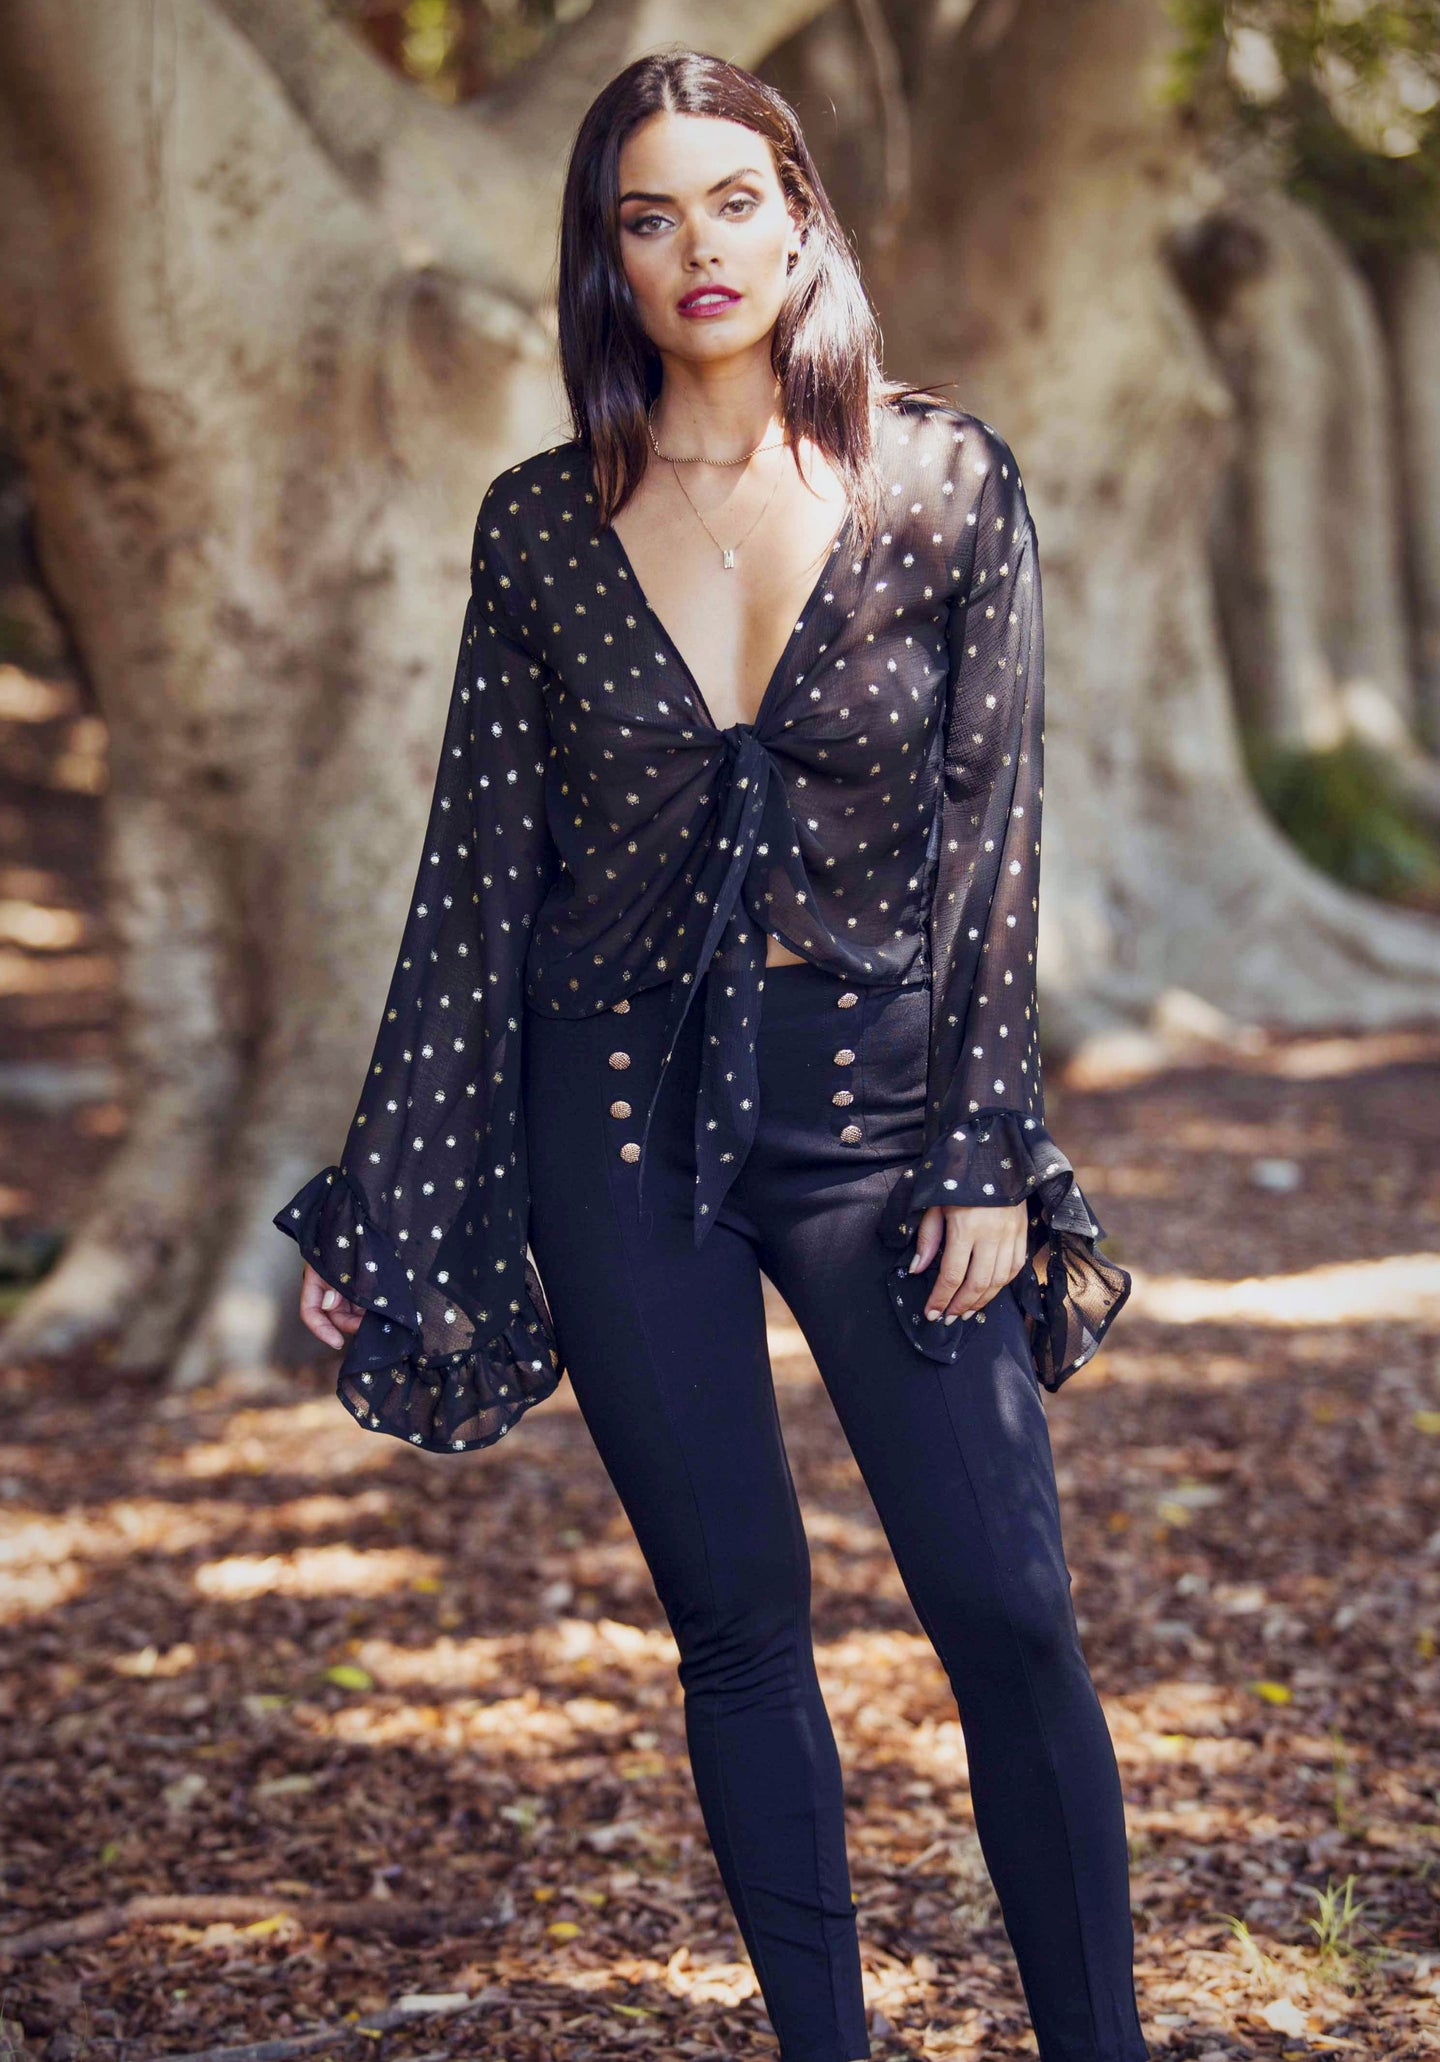 Shiva - Bell Sleeve - Tie Top - Black with Gold Polka Dot-SOPHIA + CO-SOPHIA + CO